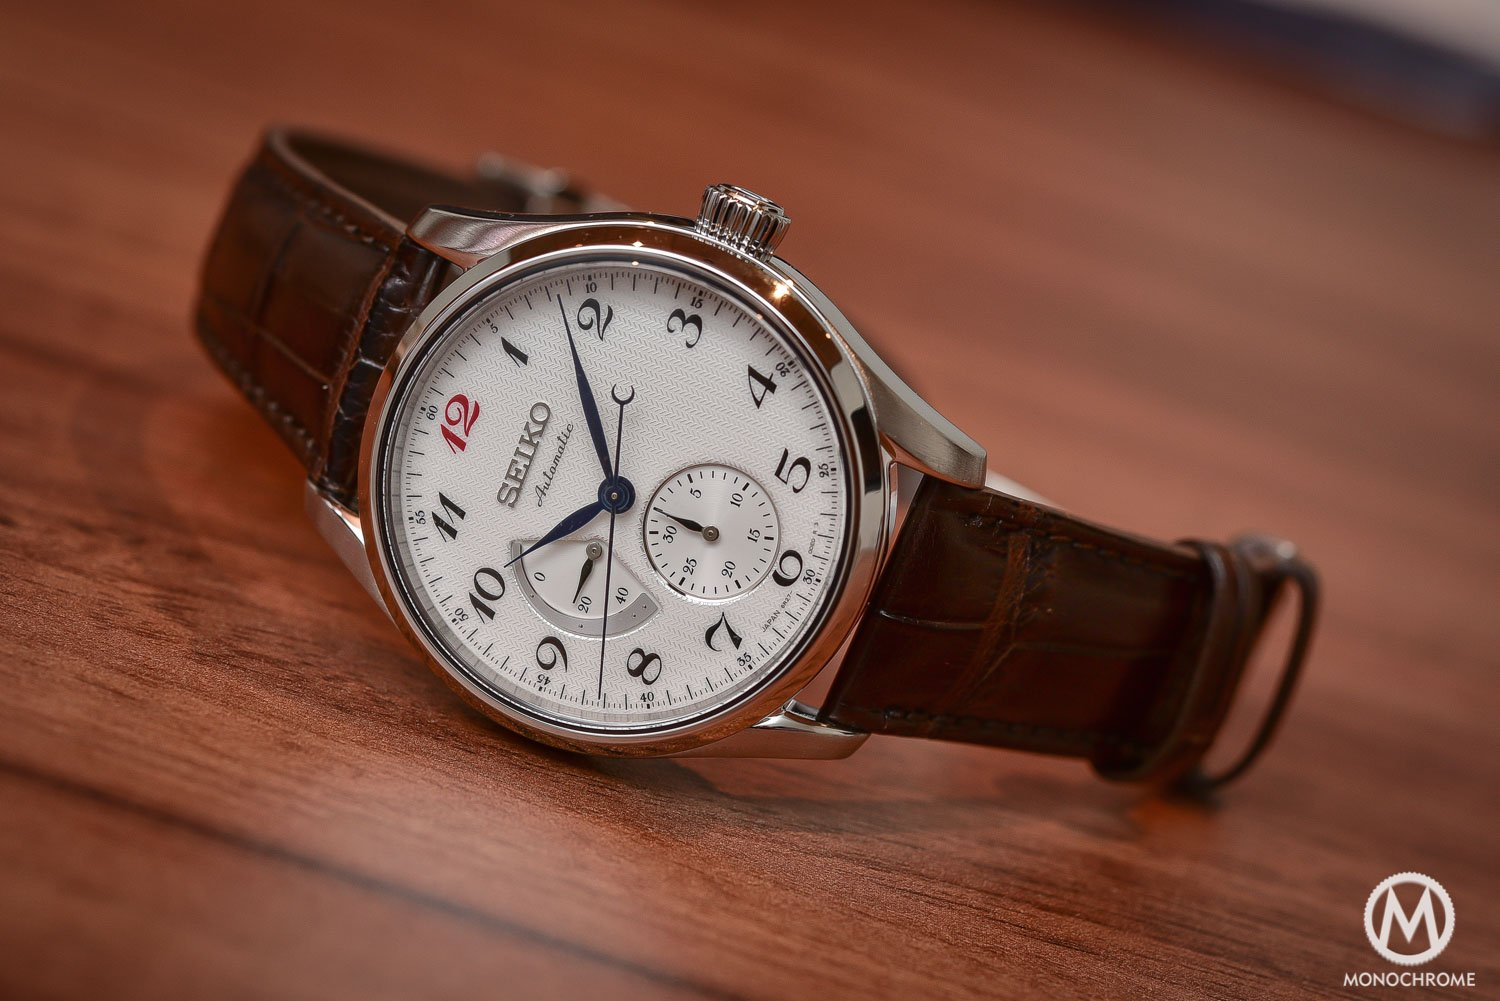 Seiko-Presage-SPB041J1-hands-on-review-5.